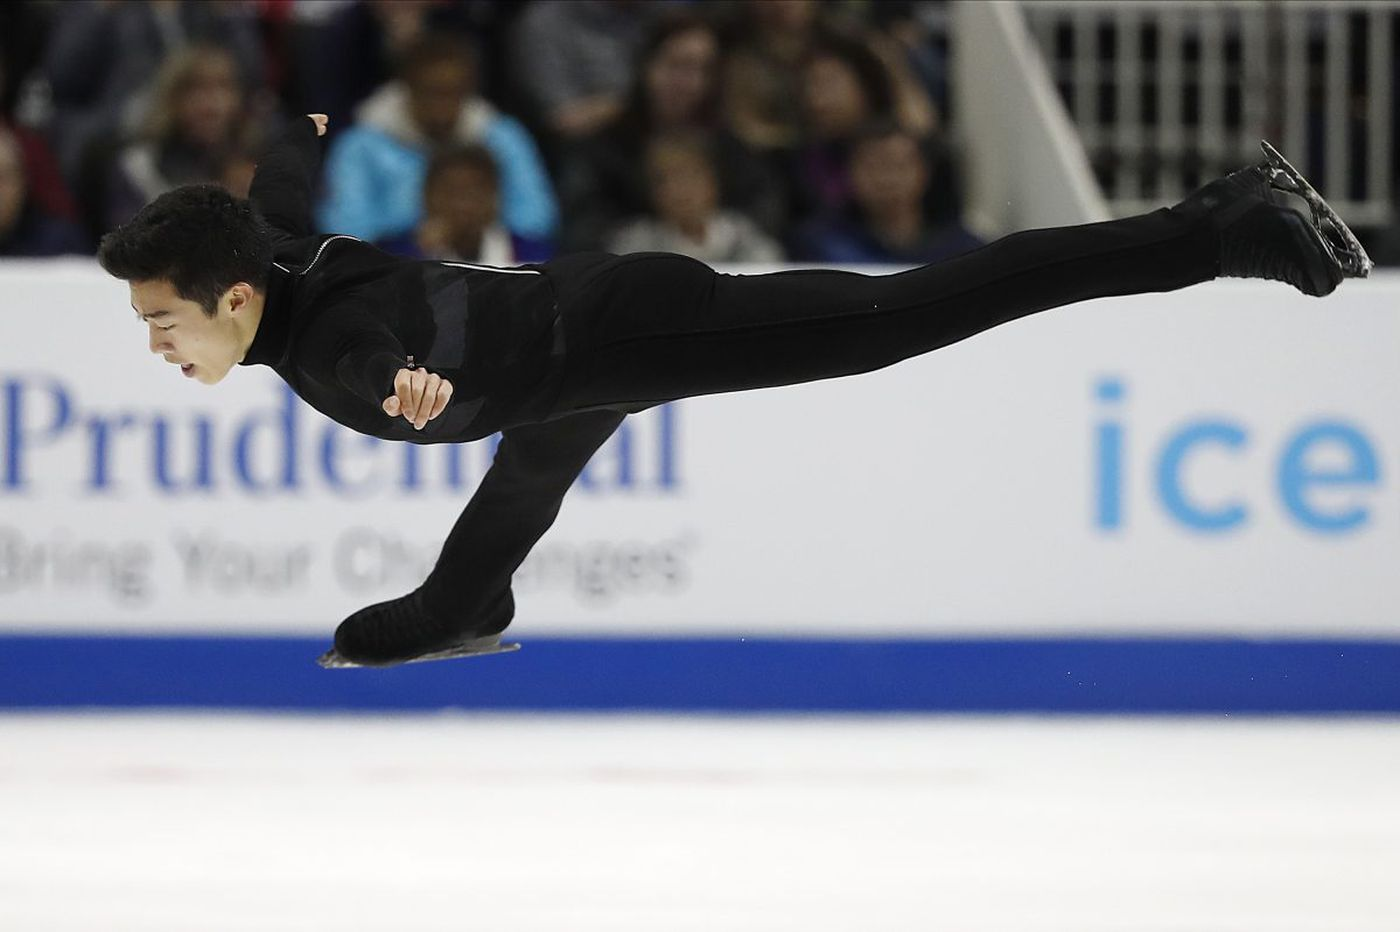 Nathan Chen skates Thursday: Here's how he lands those quads